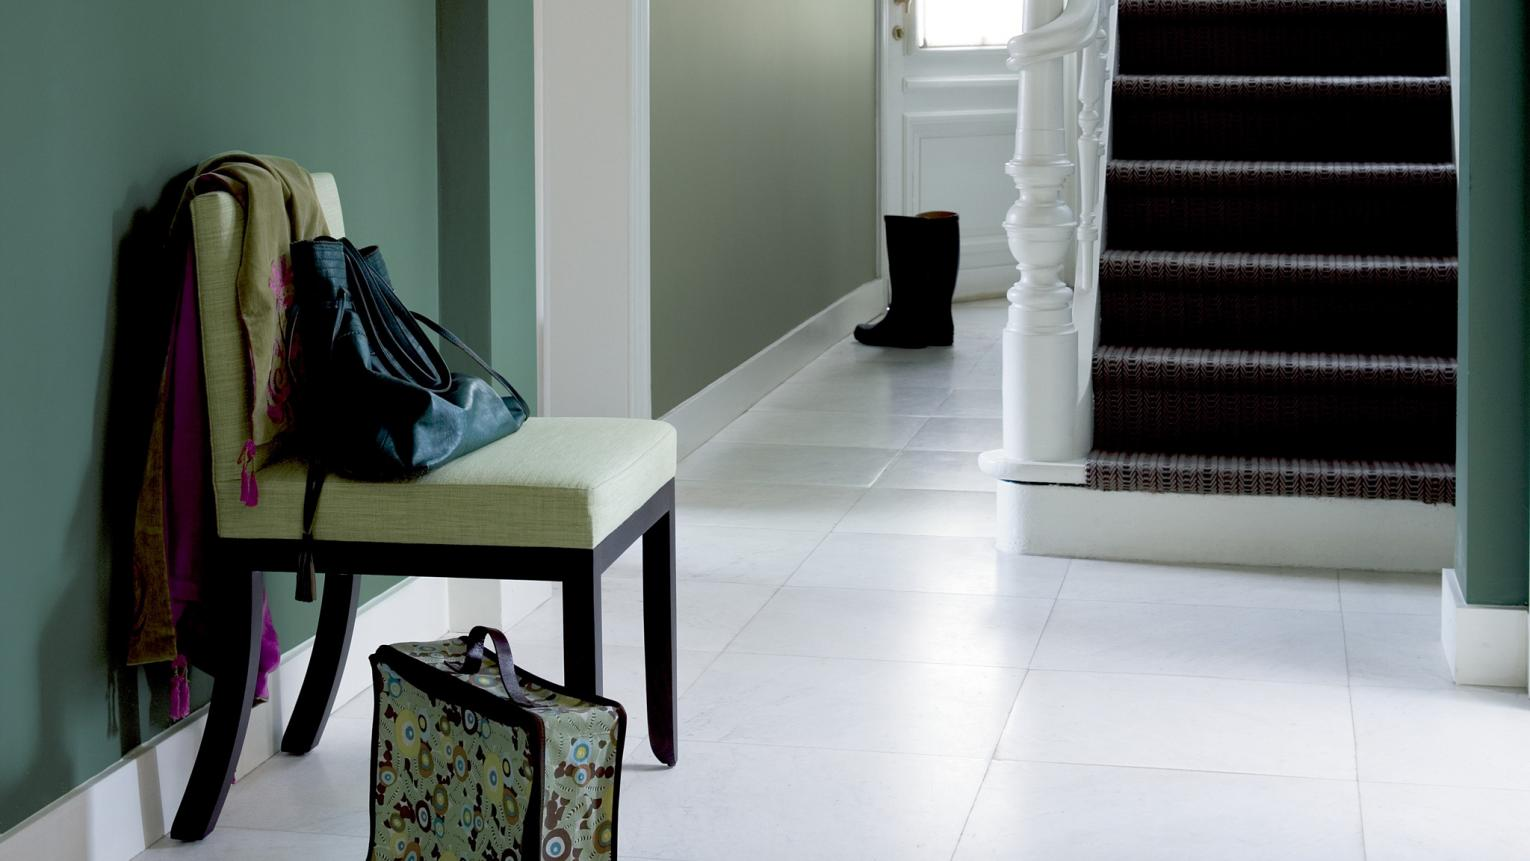 Blend shades of green for an elegant hallway